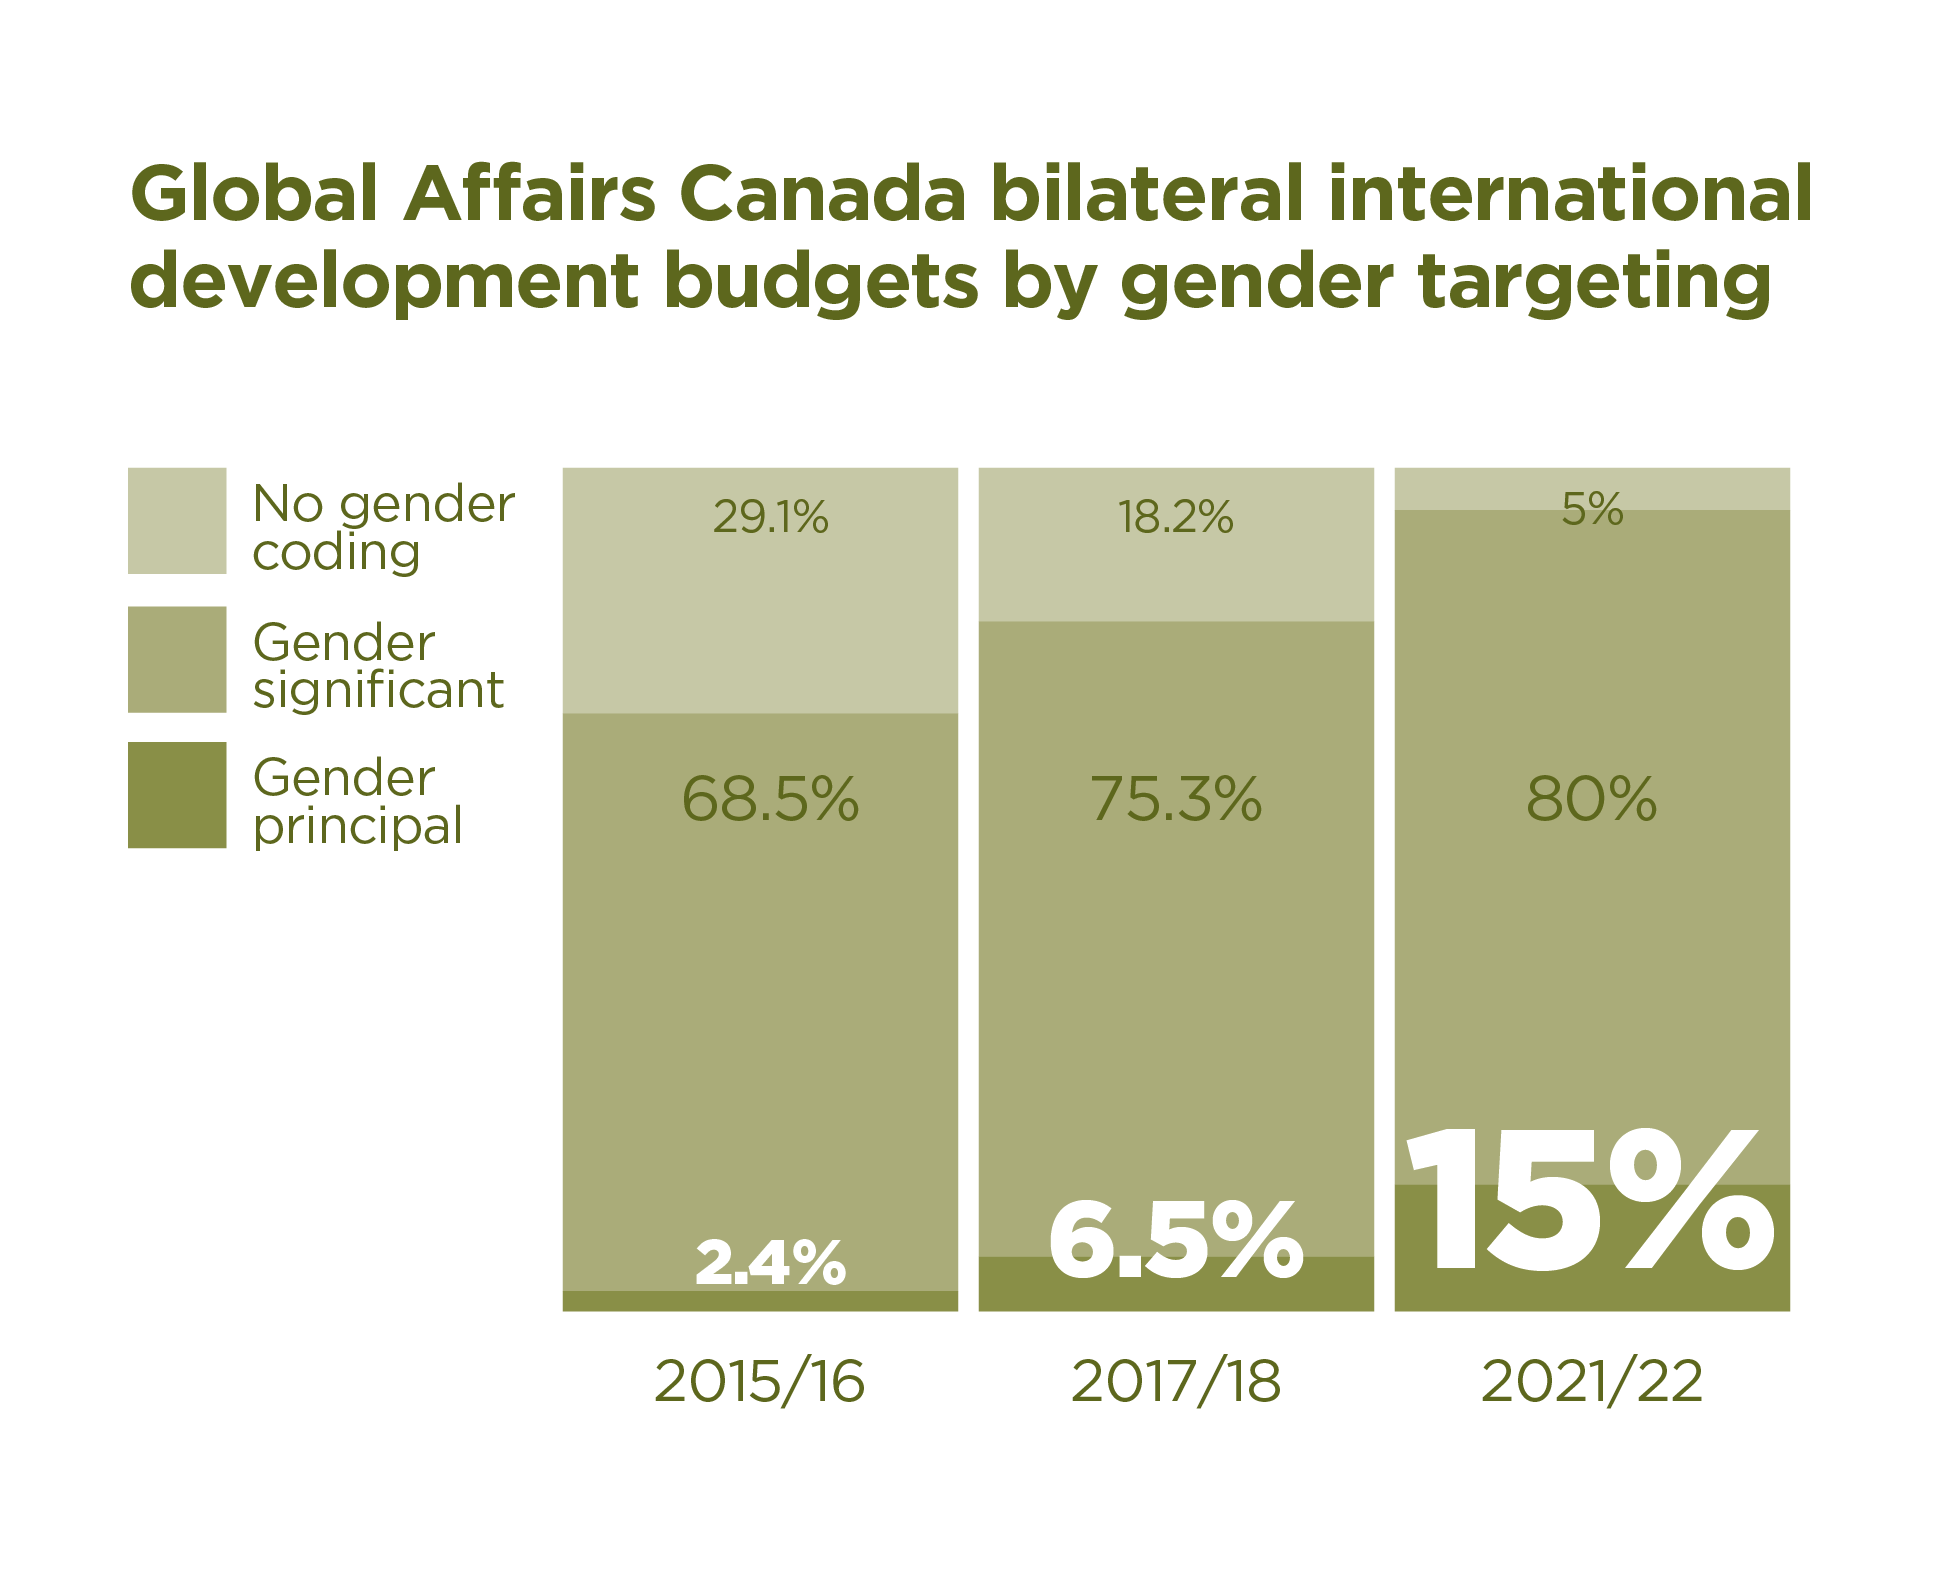 Global Affairs Canada Bilateral Development Budgets by Gender Targeting: No Gender Coding for 2015/16 – 29.1%, for 2017/18 – 18.2%, for 2021/22 – 5%. Gender Significant for 2015/16 – 68.5%, for 2017/18 – 75.3%, for 2021/22 – 80%. Gender Principal for 2015/16 – 2.4%, for 2017/18 – 6.5%, for 2021/22 – 15%.